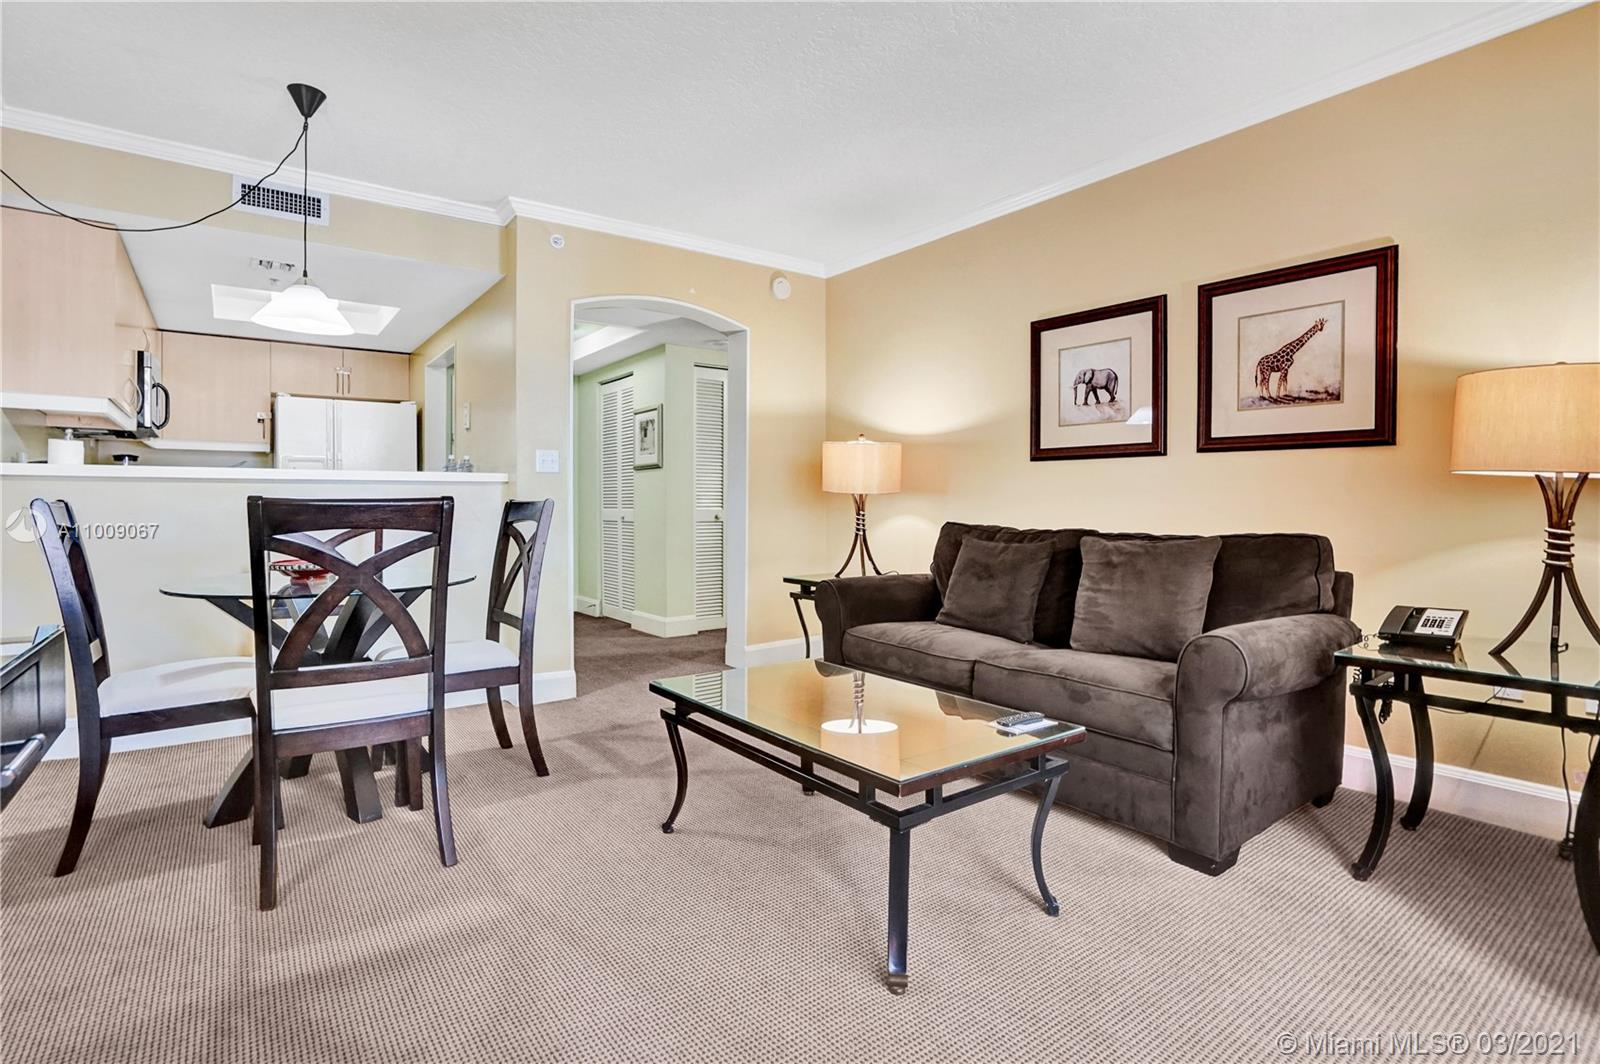 Fully furnished 1br/1ba unit in the iconic Mutiny Hotel. Live in or join the on-site rental program for immediate income with up to 120 days of personal use with no blackout periods. Unit is currently in the hotel program and previous year's income is available upon request. The Mutiny features an onsite restaurant and bar with room service, a gym with sauna and steam room, 24 hour security and front desk, concierge, complimentary valet or self parking ,a nd more. The Mutiny is jut steps away from the heart of coconut Grove and all of the shops, restaurants and night life.